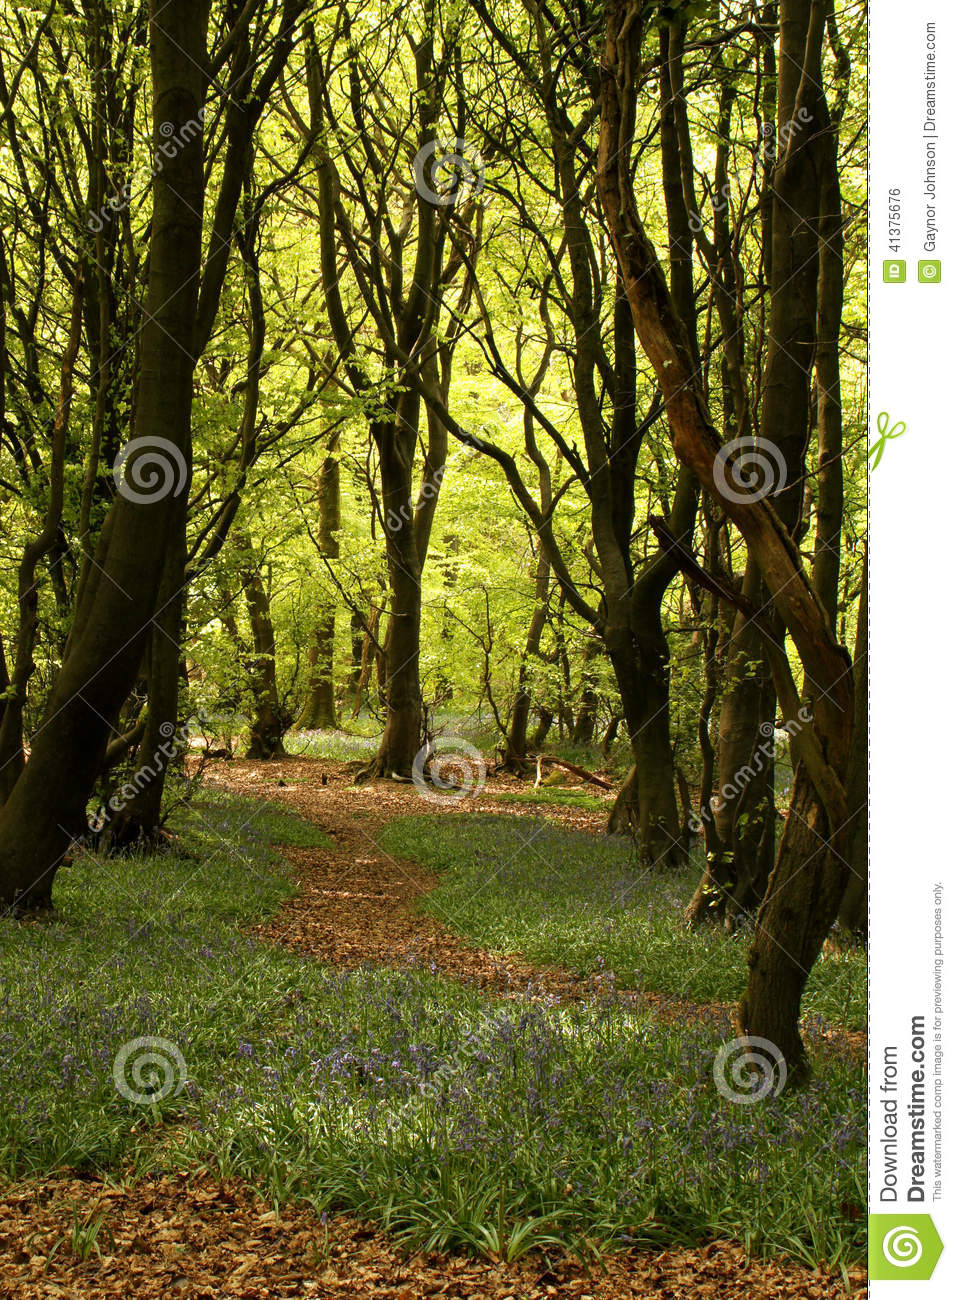 Woodland path with trees and bluebells